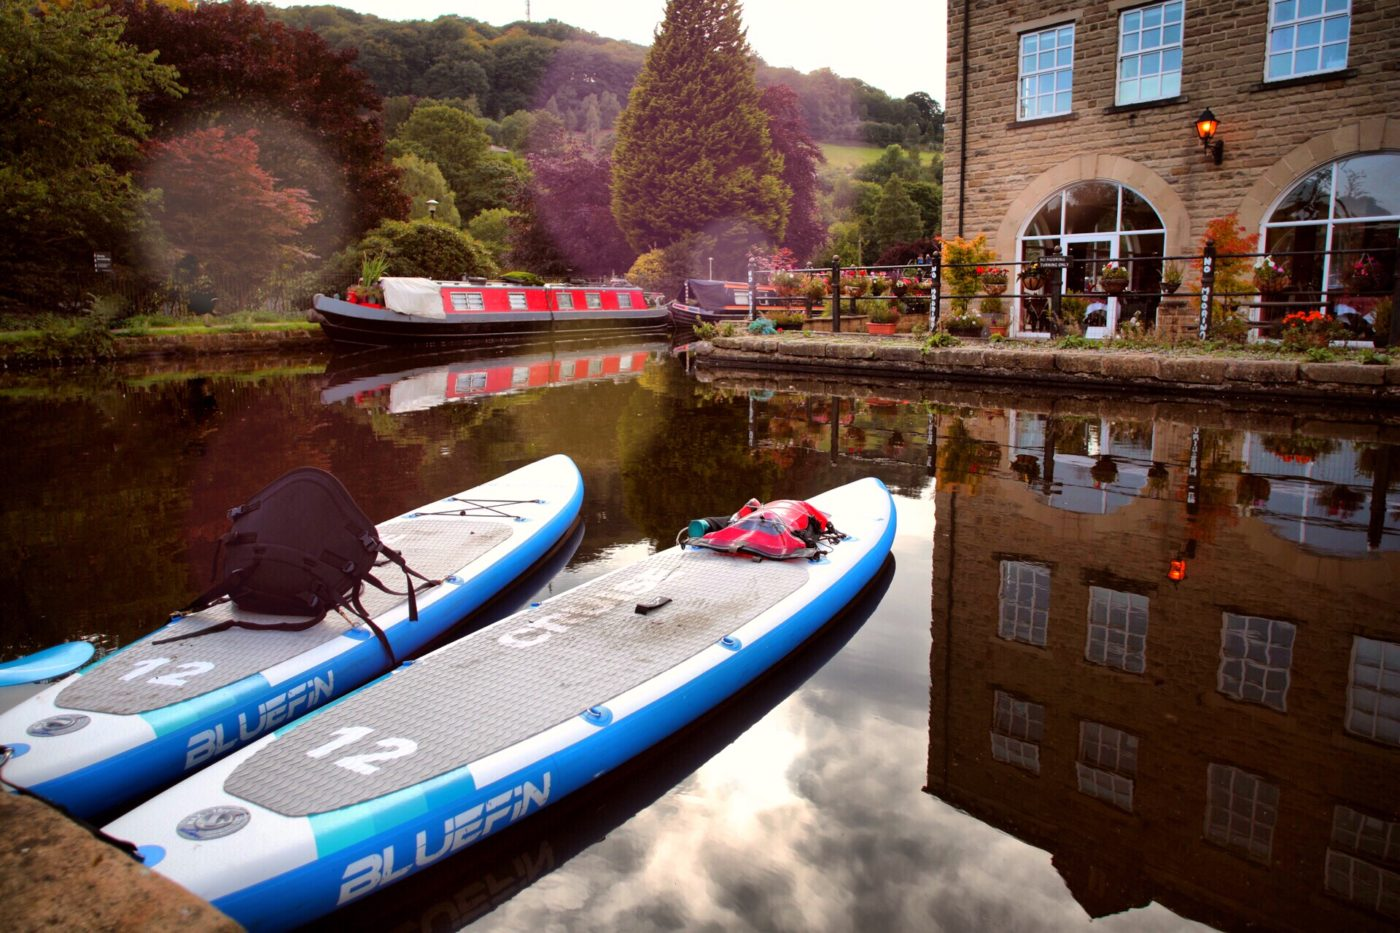 Bluefin cruise sup touring boards in hebden bridge